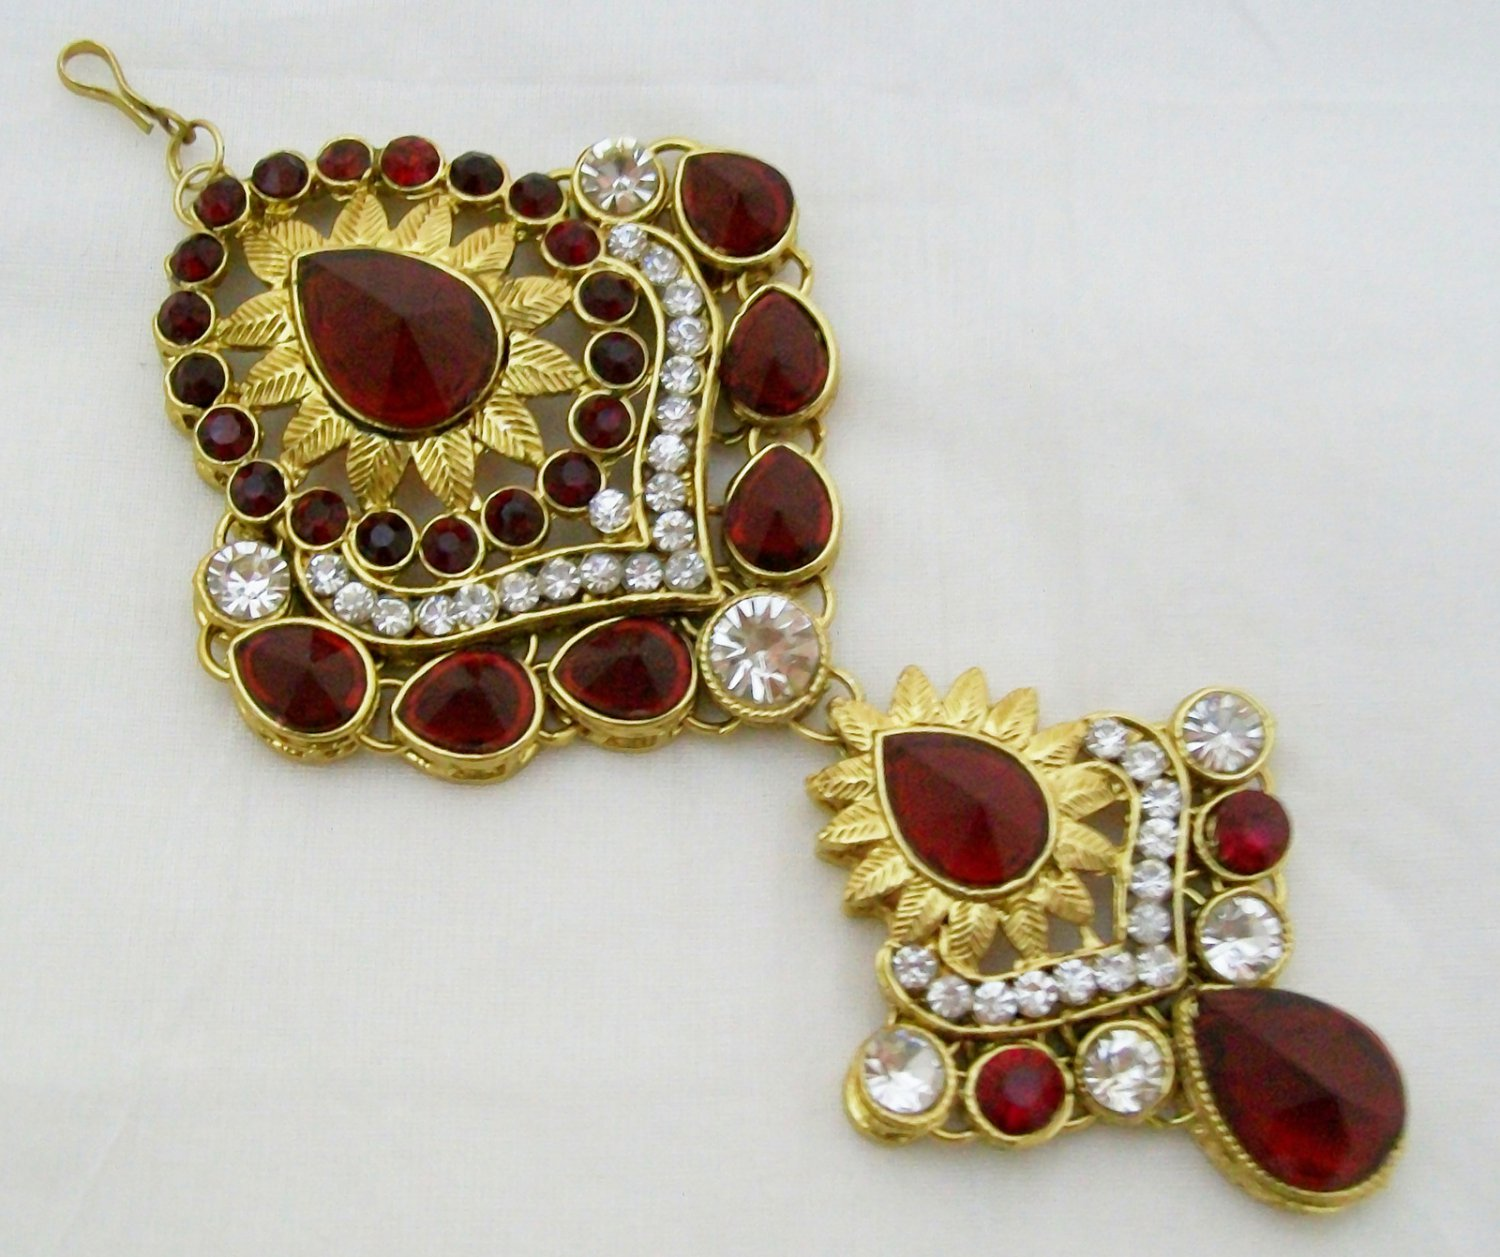 Jodha Akbar Kundan Jhoomar Indian Bridal Hair Jewelry